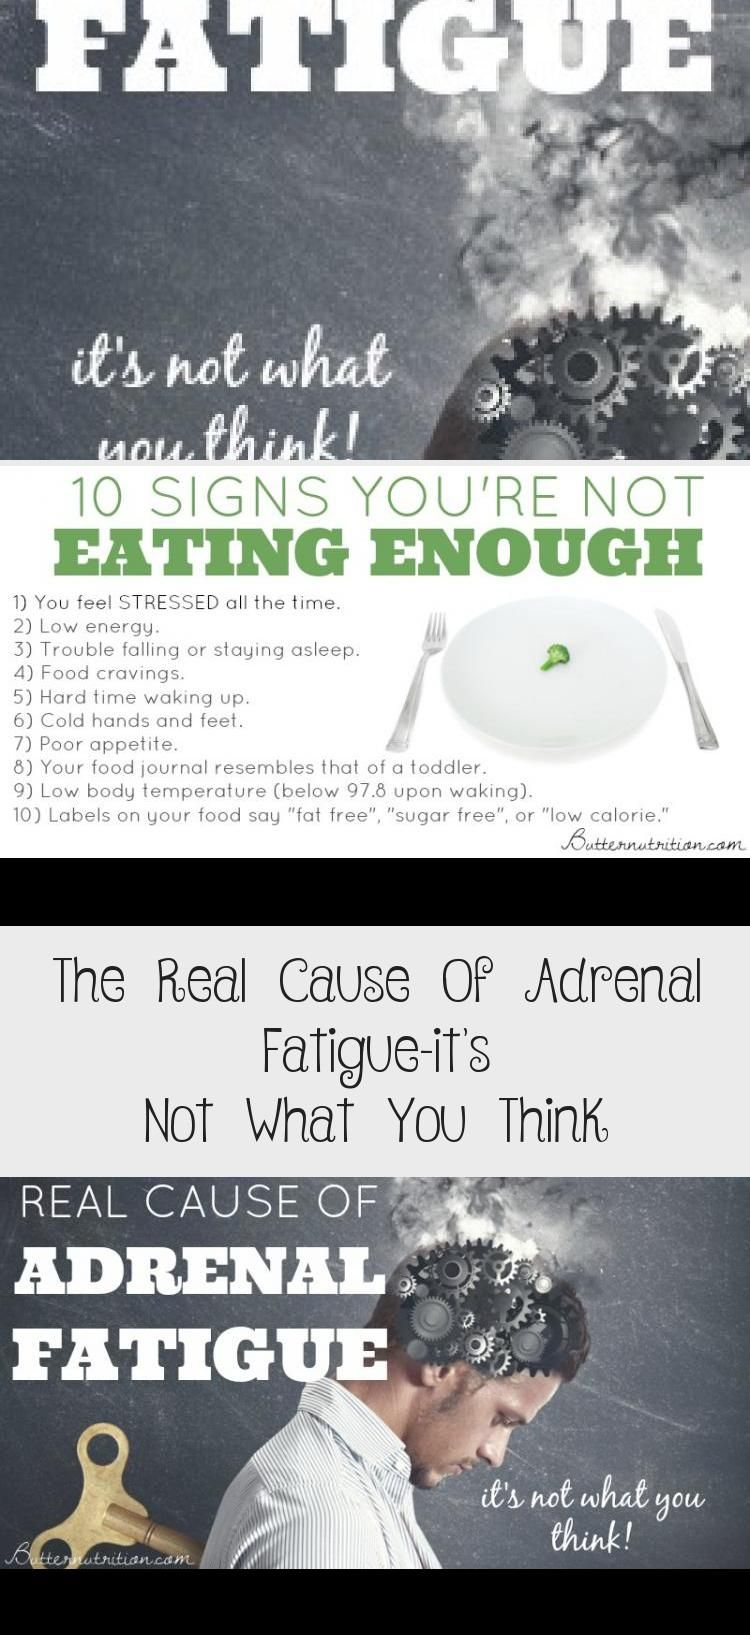 The Real Cause Of Adrenal Fatigue Symptoms It S Not What You Think Butter Nutrition Healthylifesty Adrenal Fatigue Adrenal Stress Adrenal Fatigue Symptoms